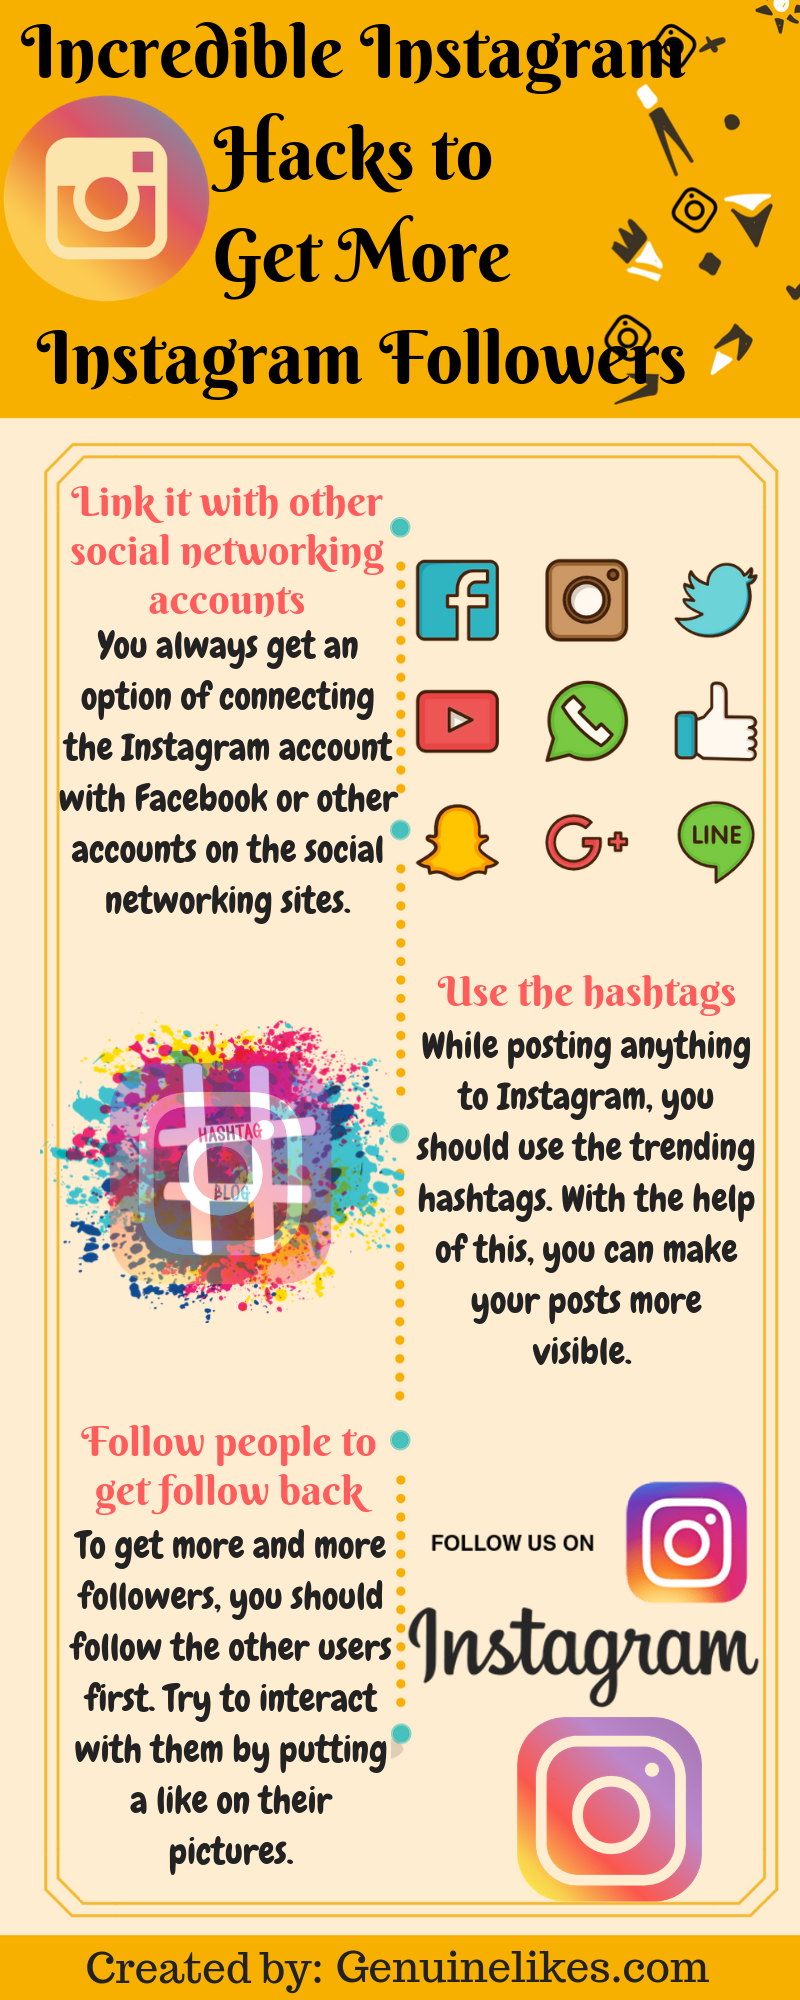 How To Increase Followers On Instagram Without Following Back